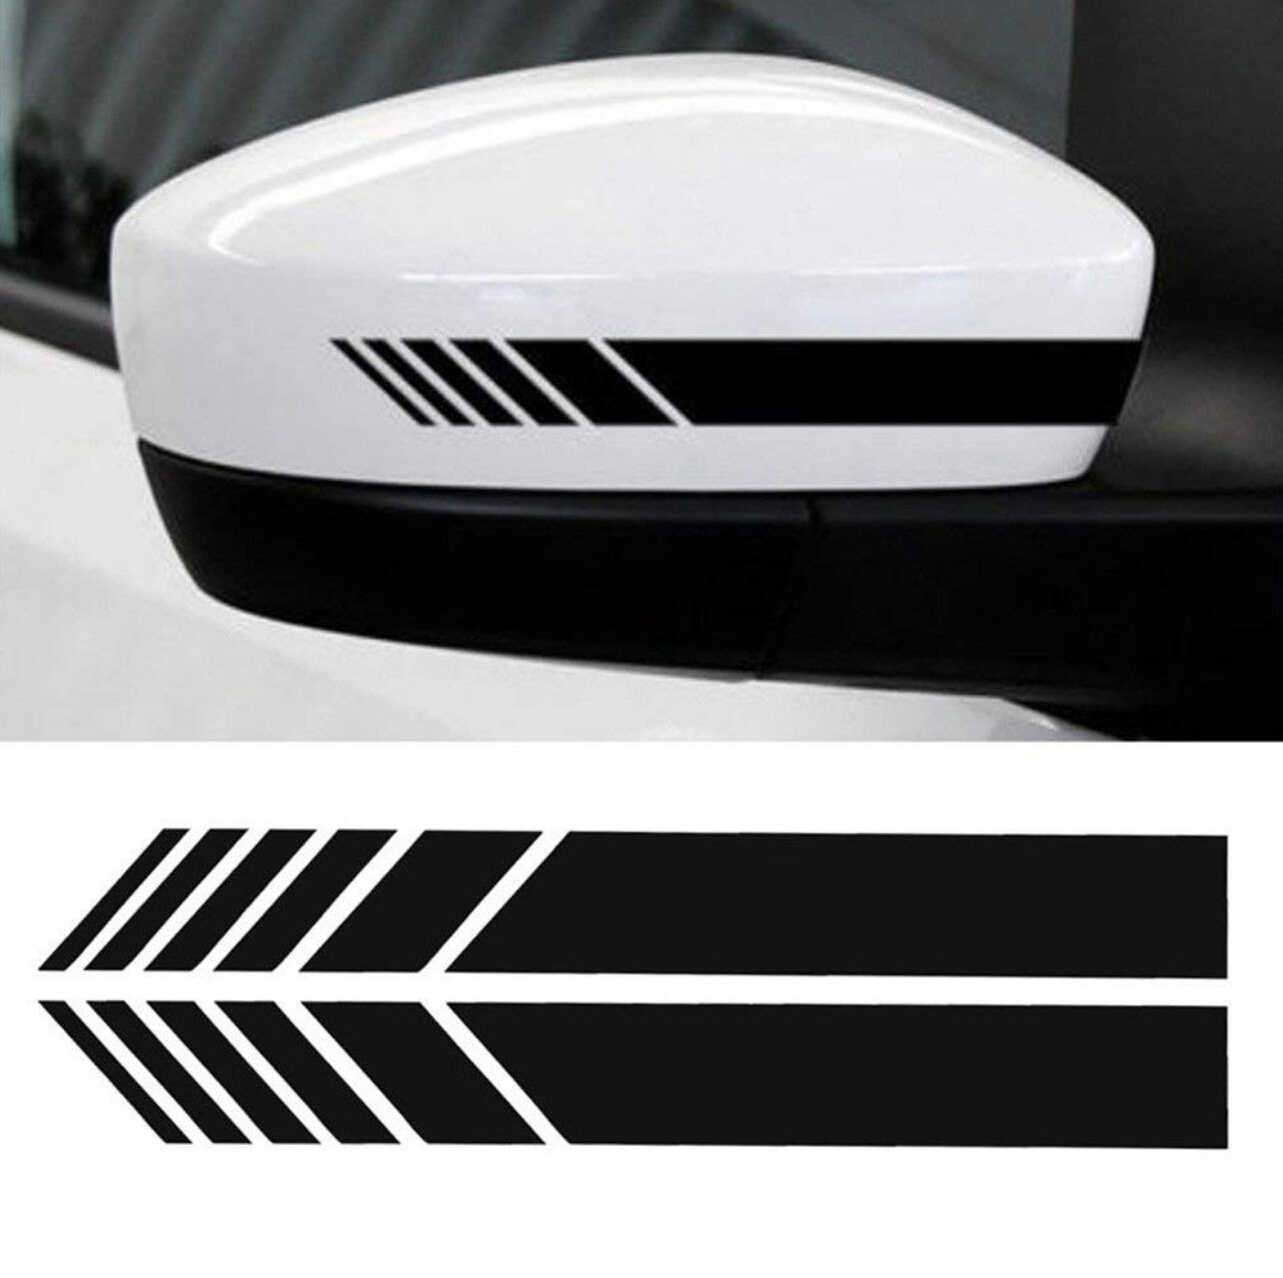 2PCS Universal Car Specchio Retrovisore Laterale Trim Decal Tuning Auto Accessori Del Vinile Graphic FAI DA TE 3D Sticker Forniture Esterne